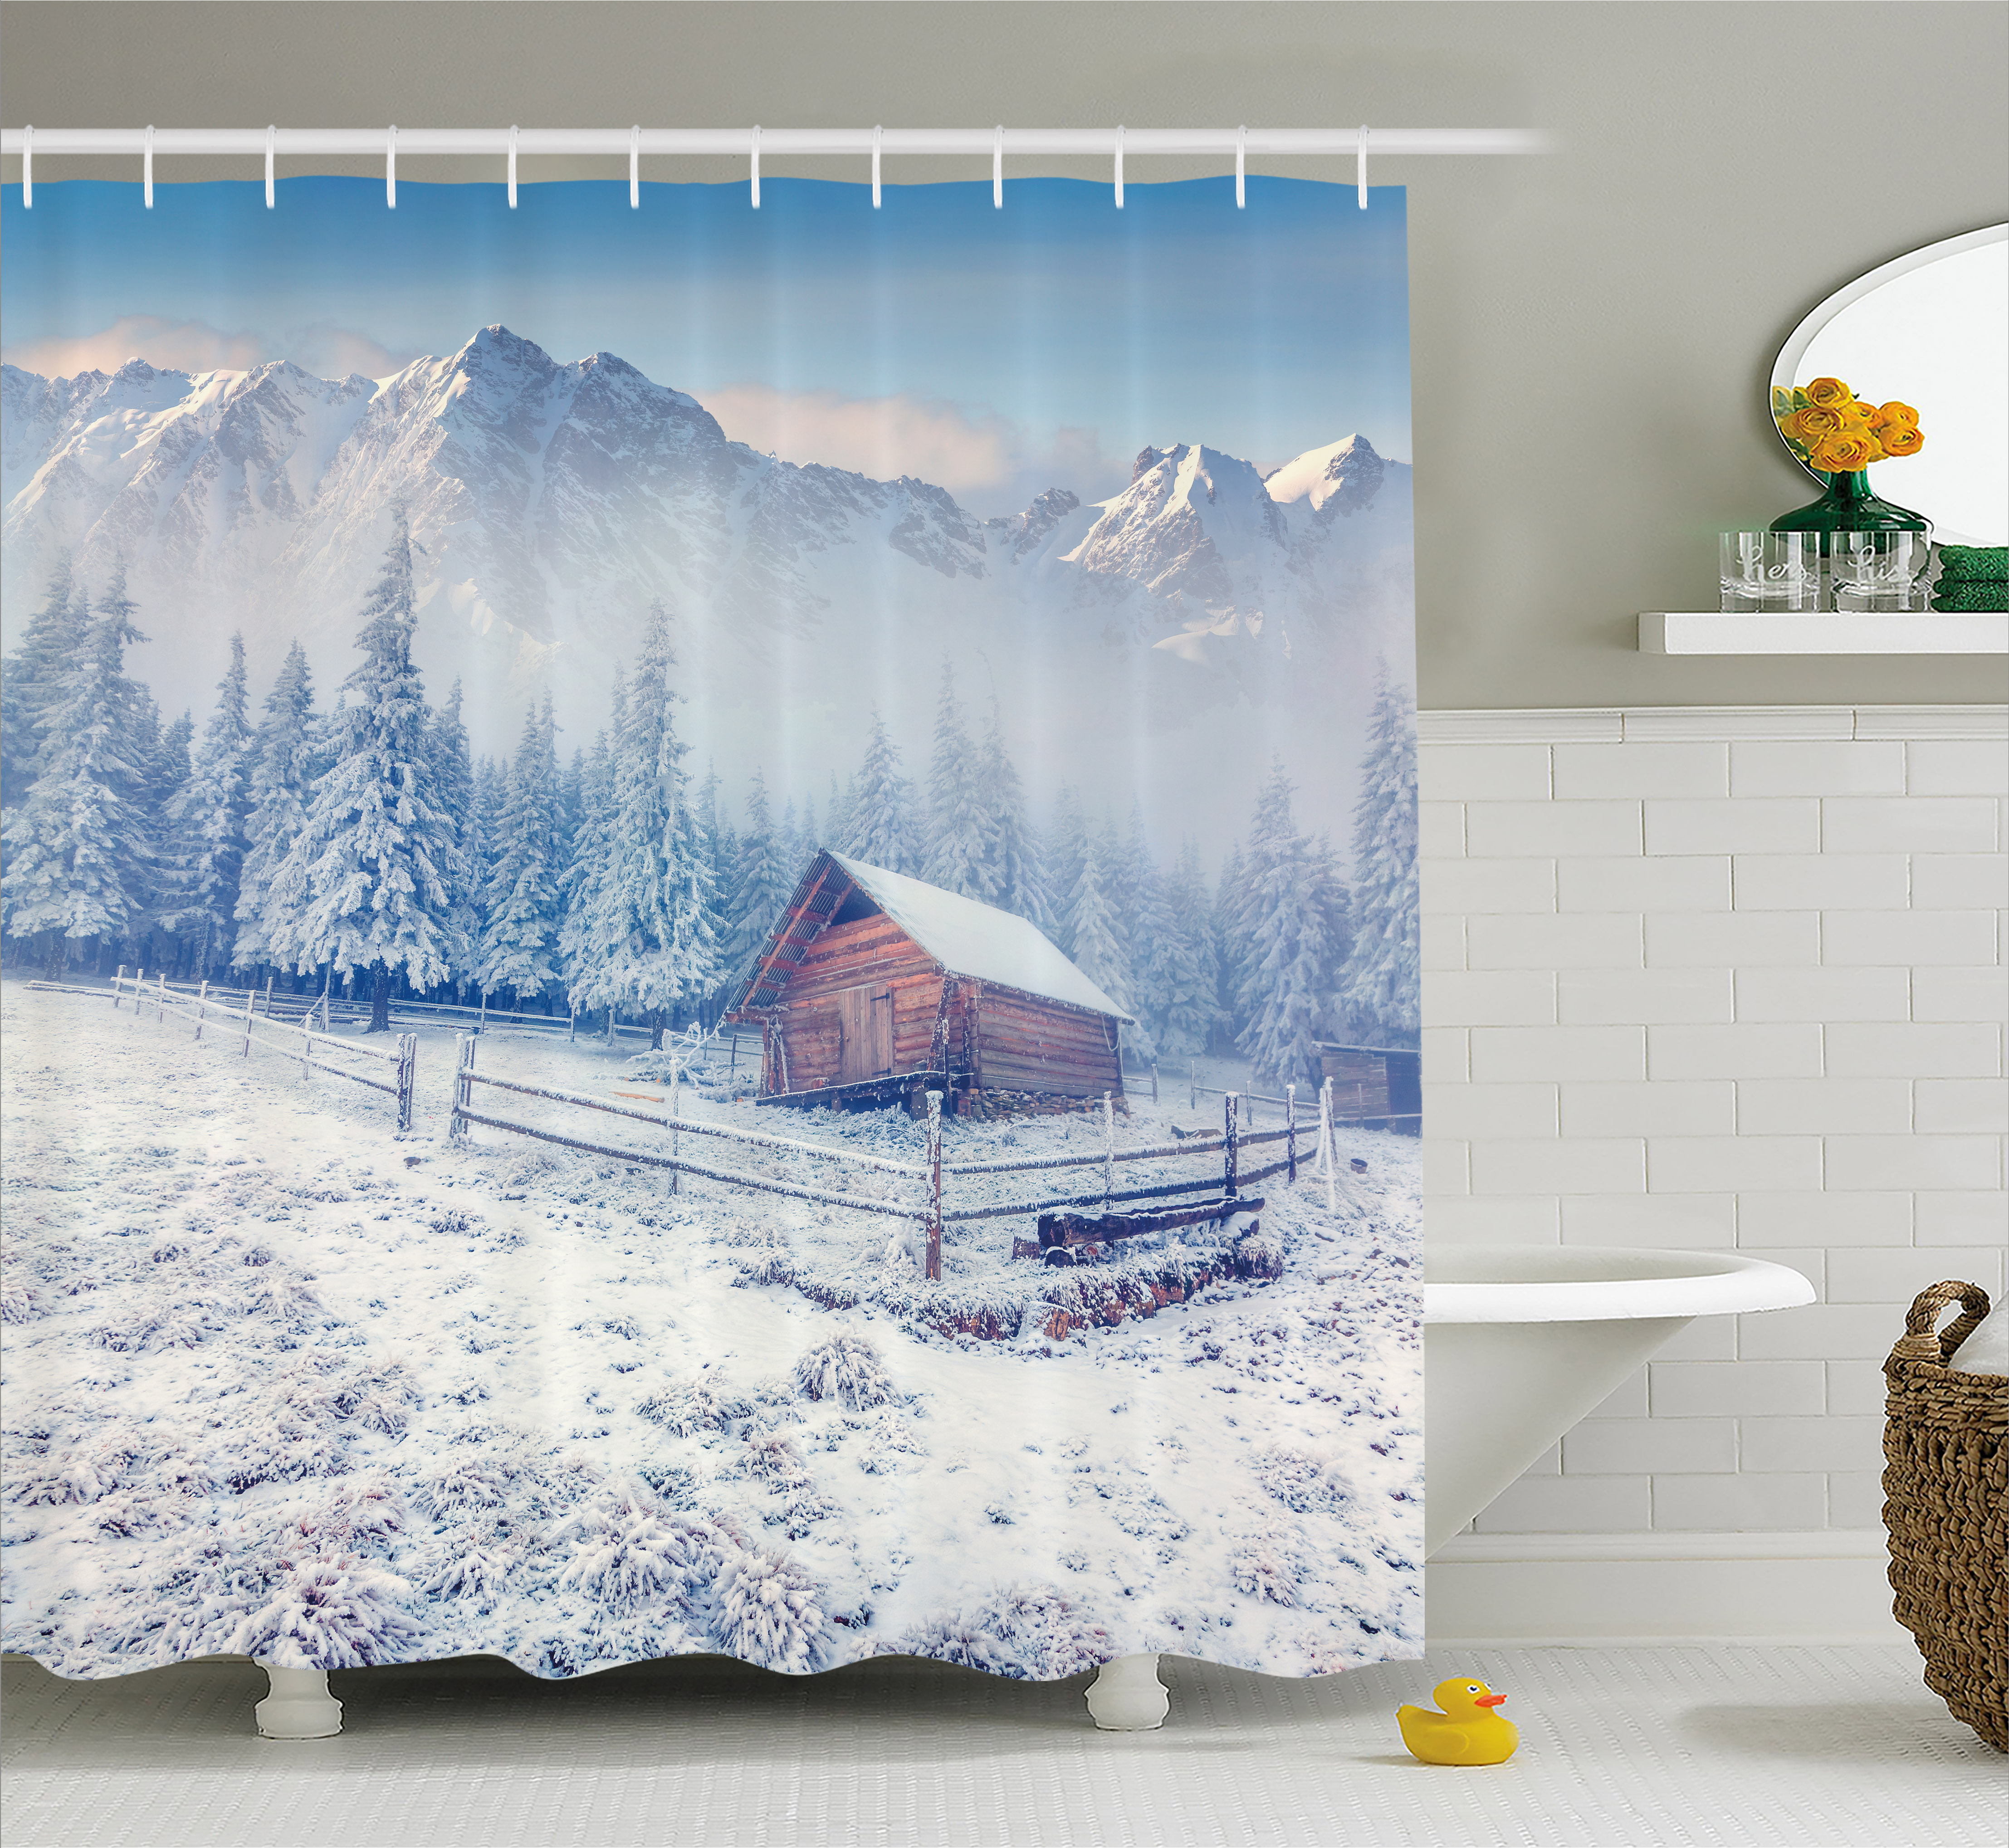 Winter Shower Curtain, Old Farmhouse in Snow Mountains and Frosted Forest Rustic Life Photography, Fabric Bathroom Set with Hooks, 69W X 84L Inches Extra Long, Caramel White Blue, by Ambesonne